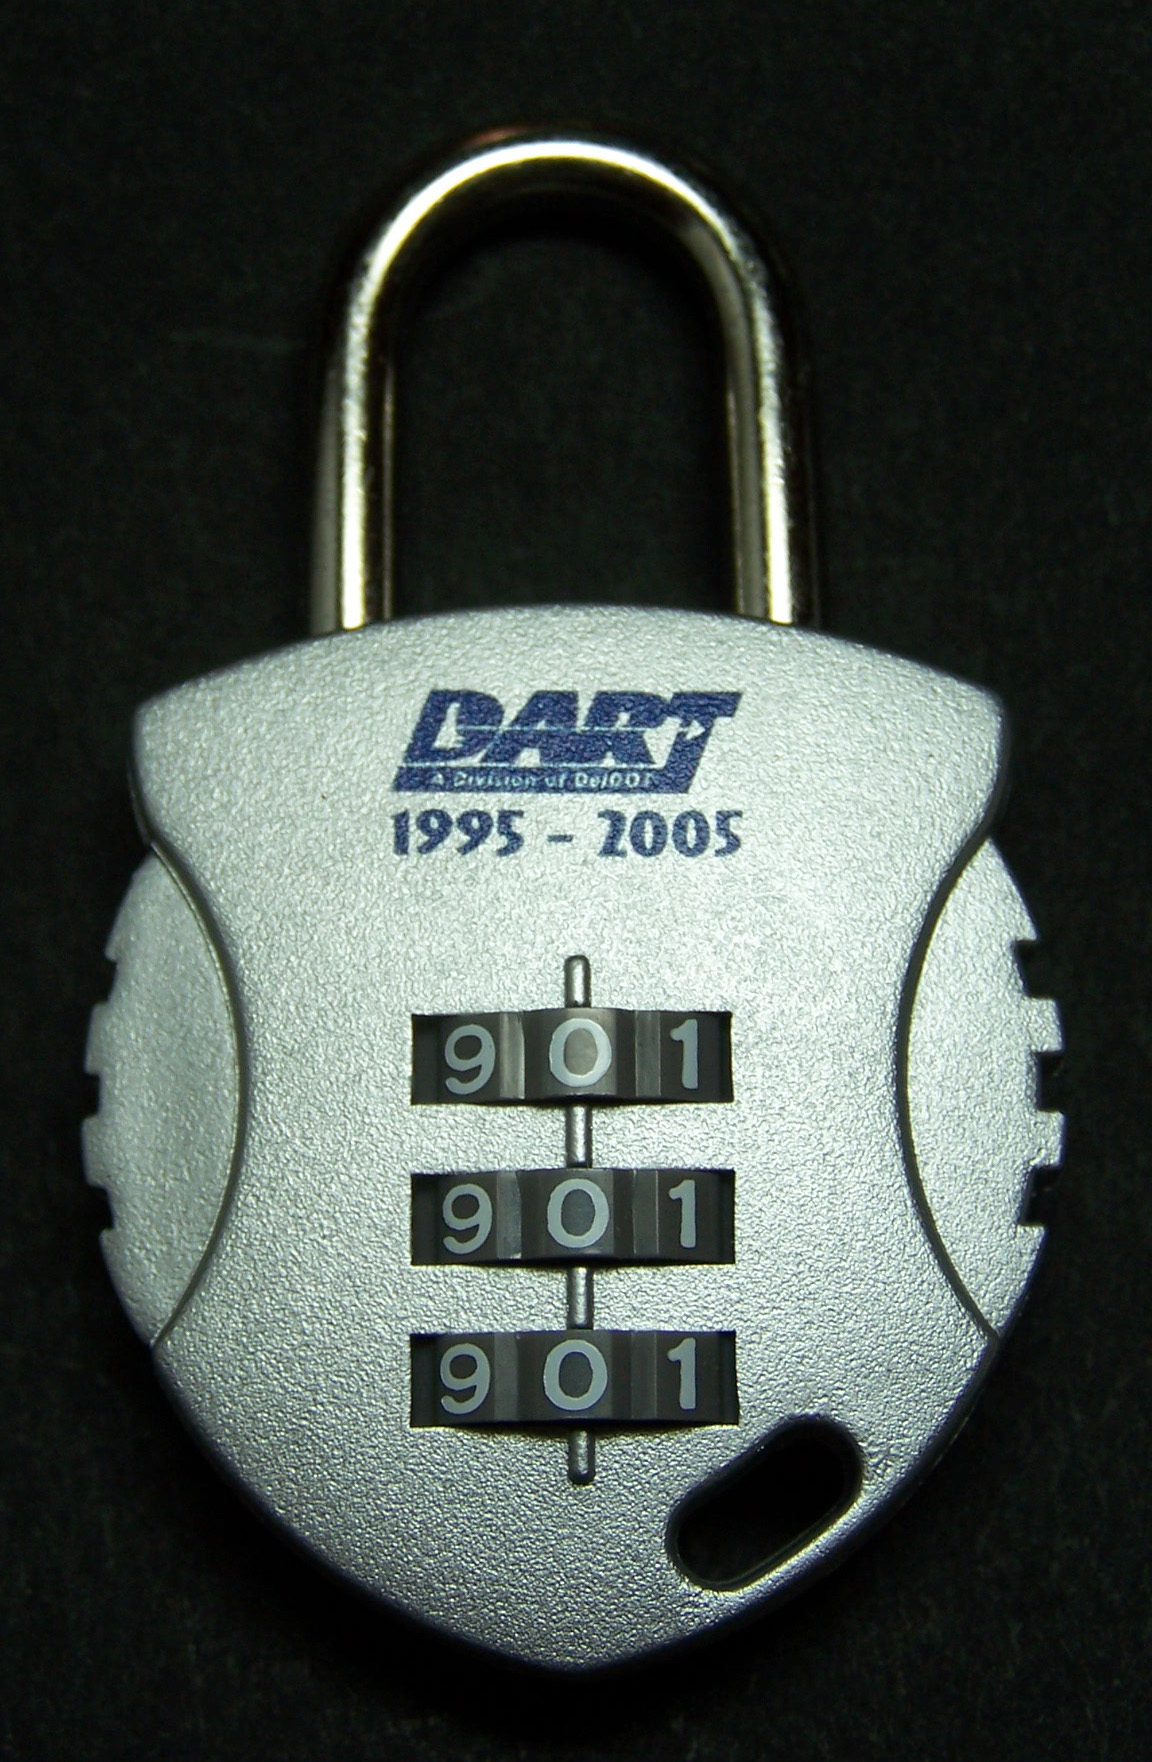 DART 10th Anniversary Combination Lock